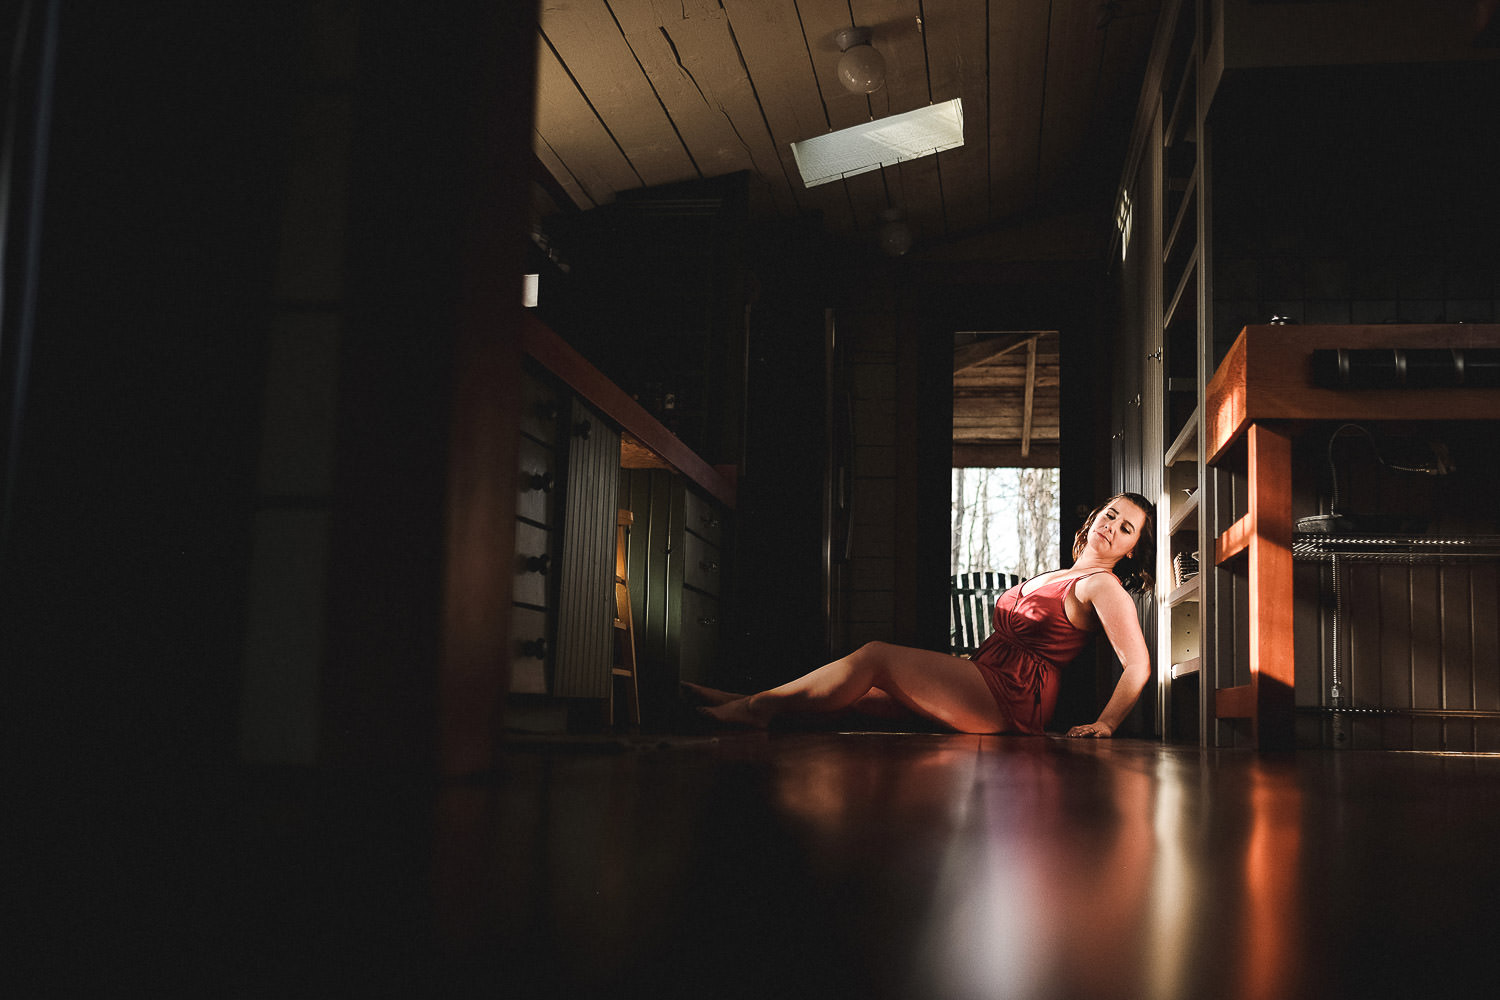 edmonton intimate portrait photographer